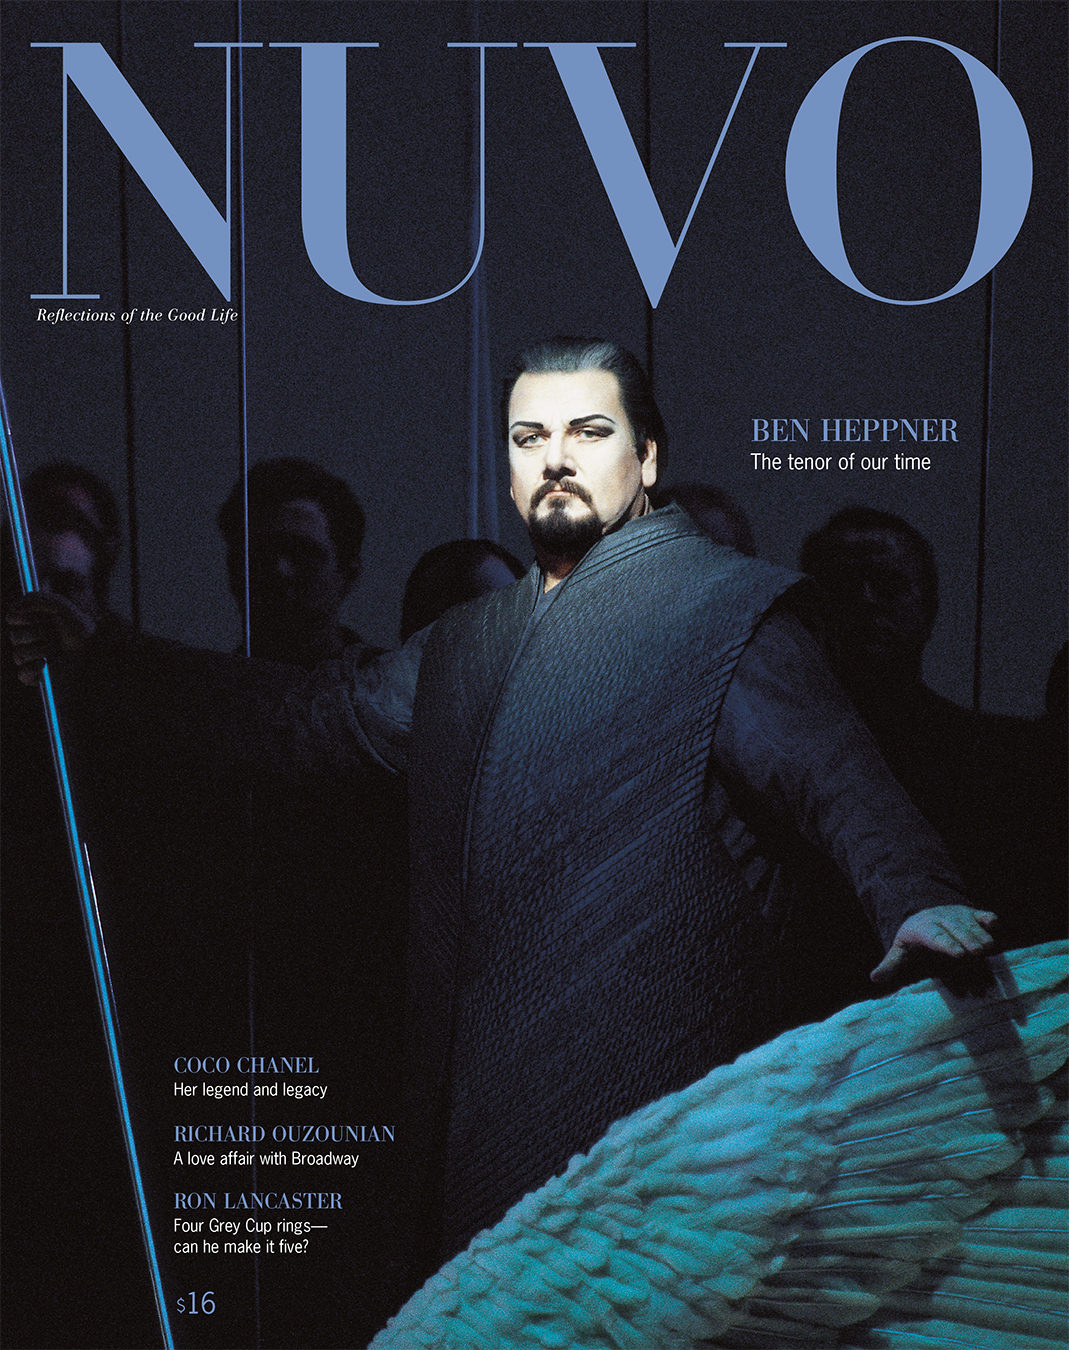 NUVO Magazine Autumn 2000 Cover featuring Ben Heppner